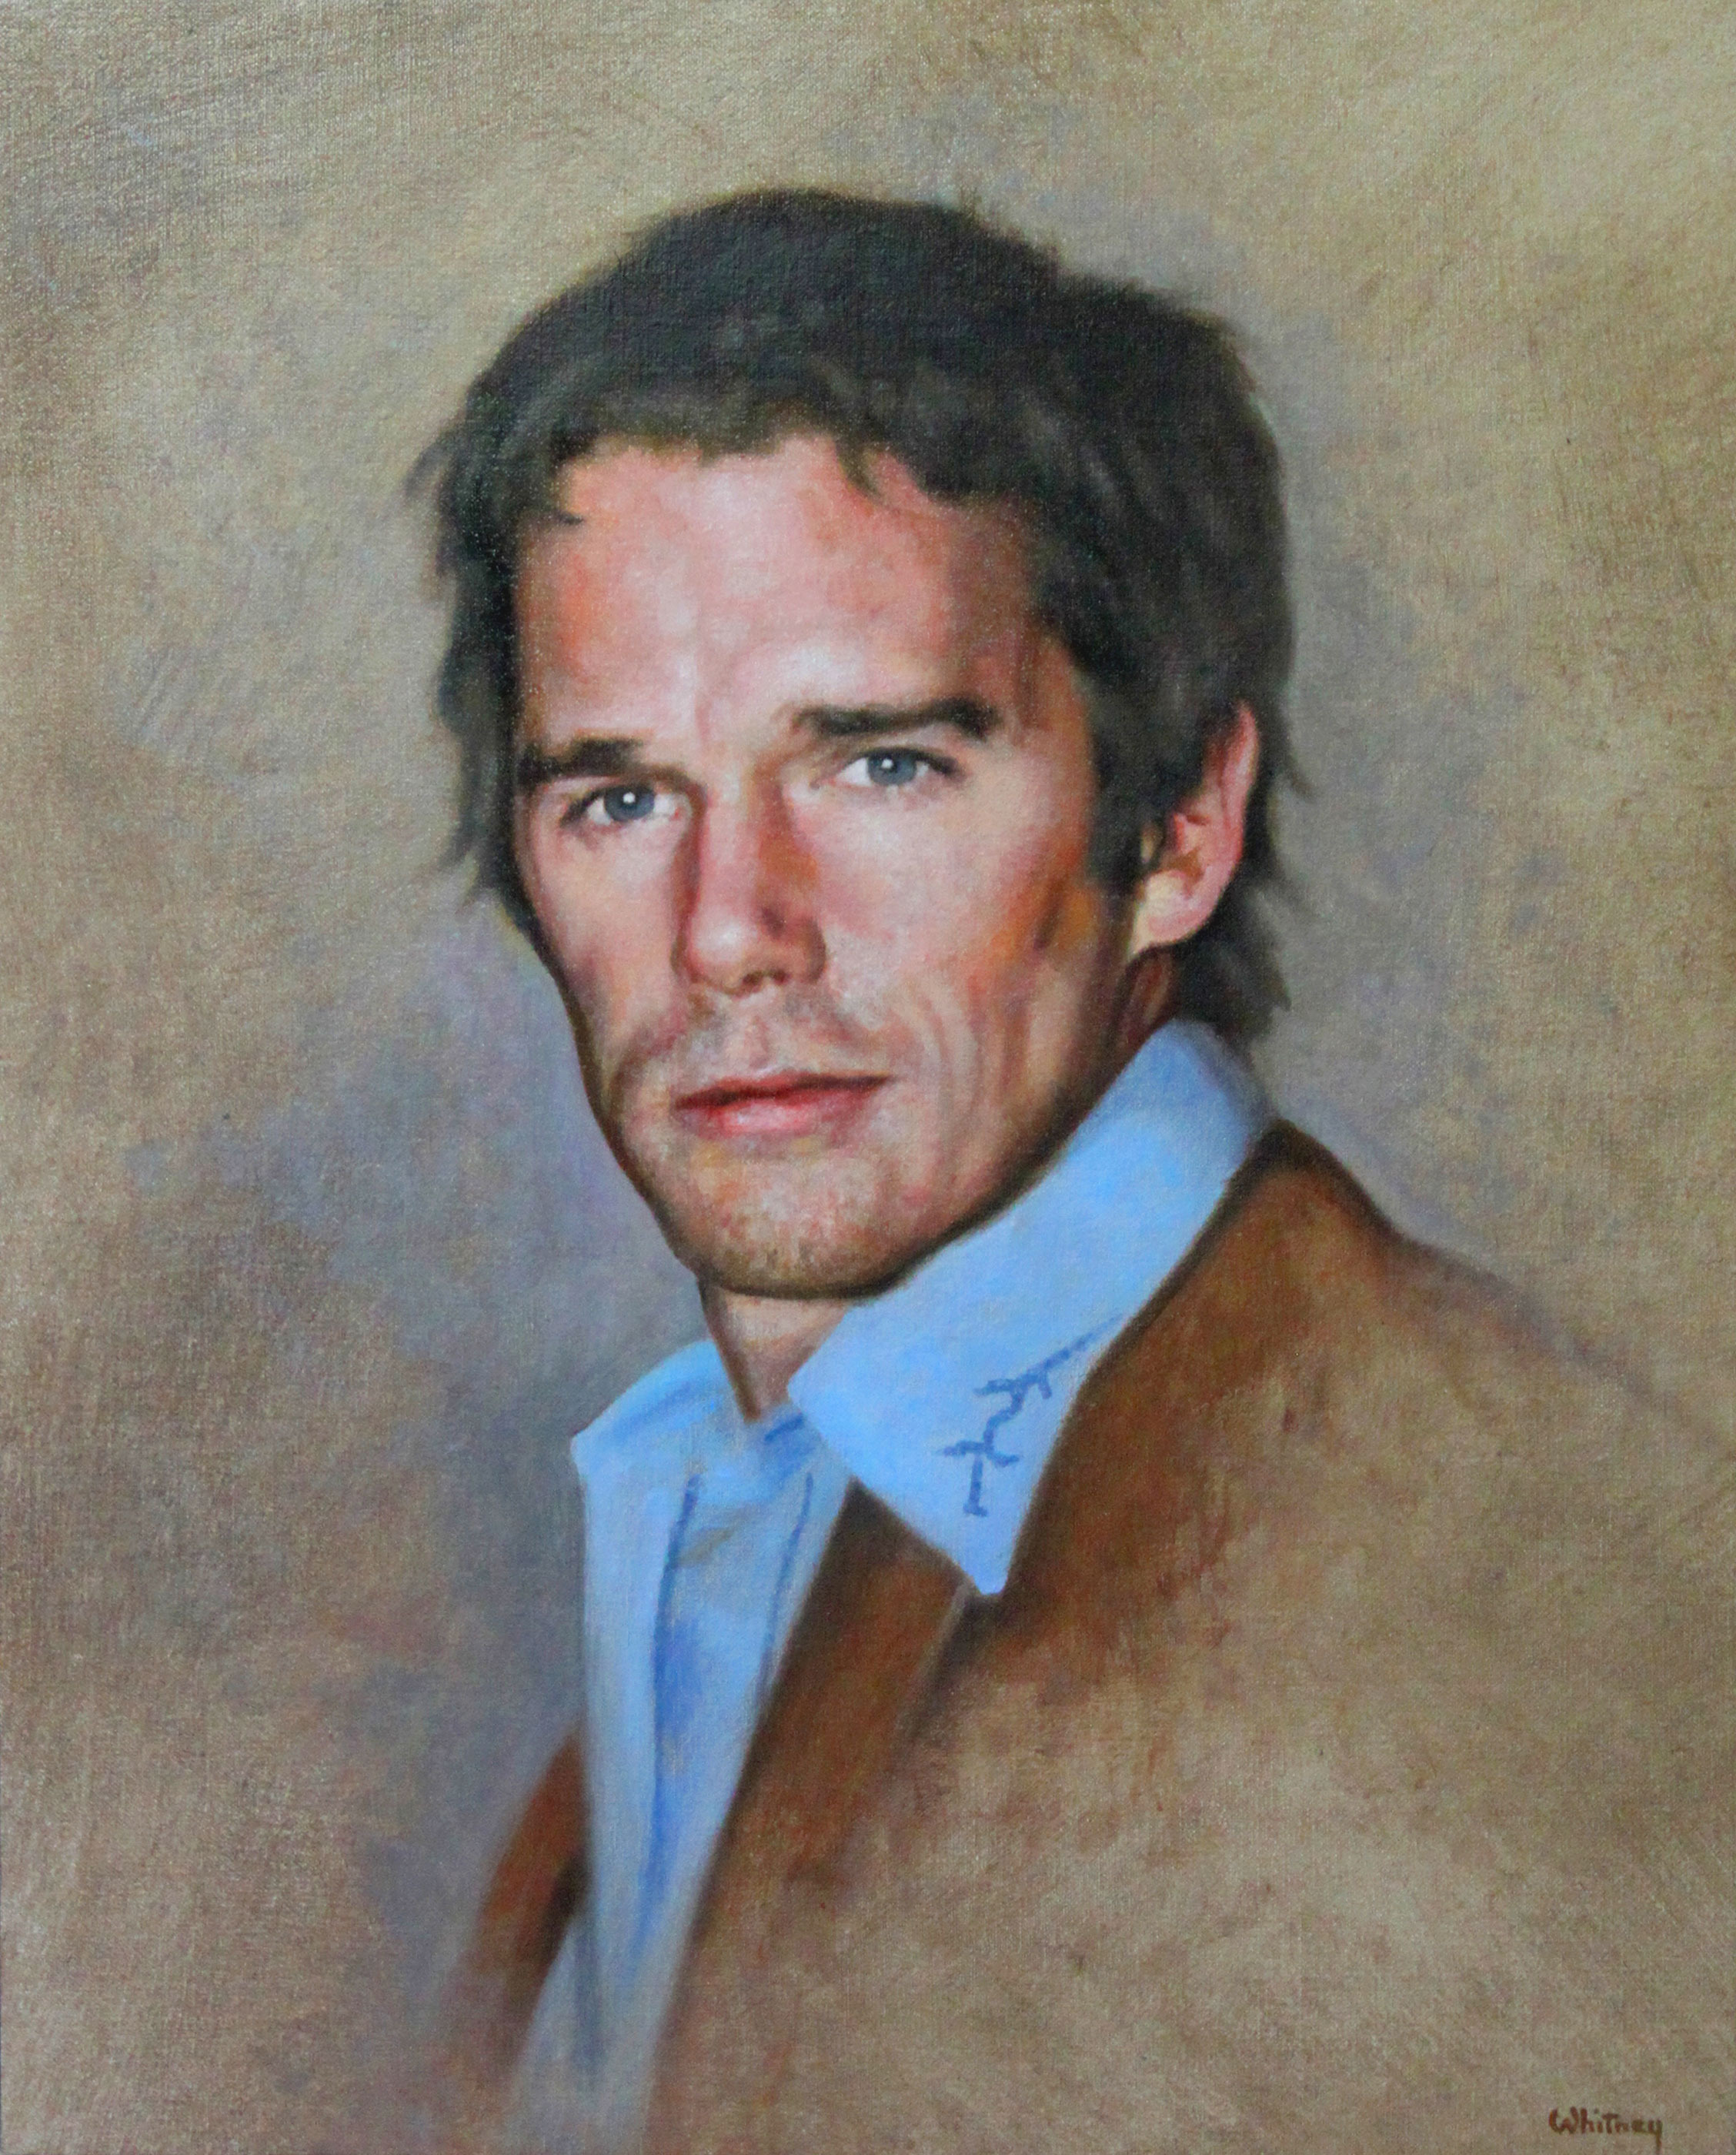 Ethan hawke  the players  nyc  oil on canvas 20 x 16 web